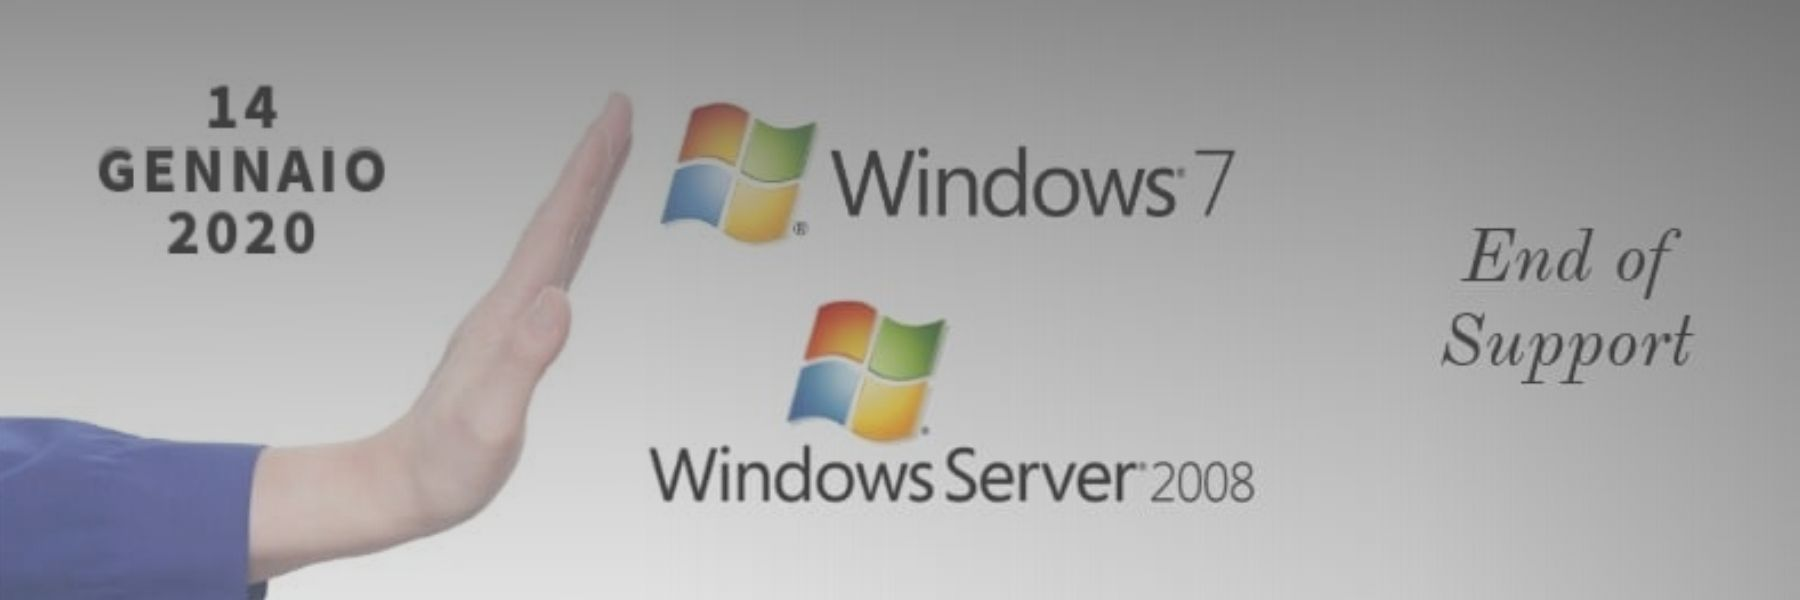 Fine del Supporto Microsoft per Windows 7 e Windows Server 2008